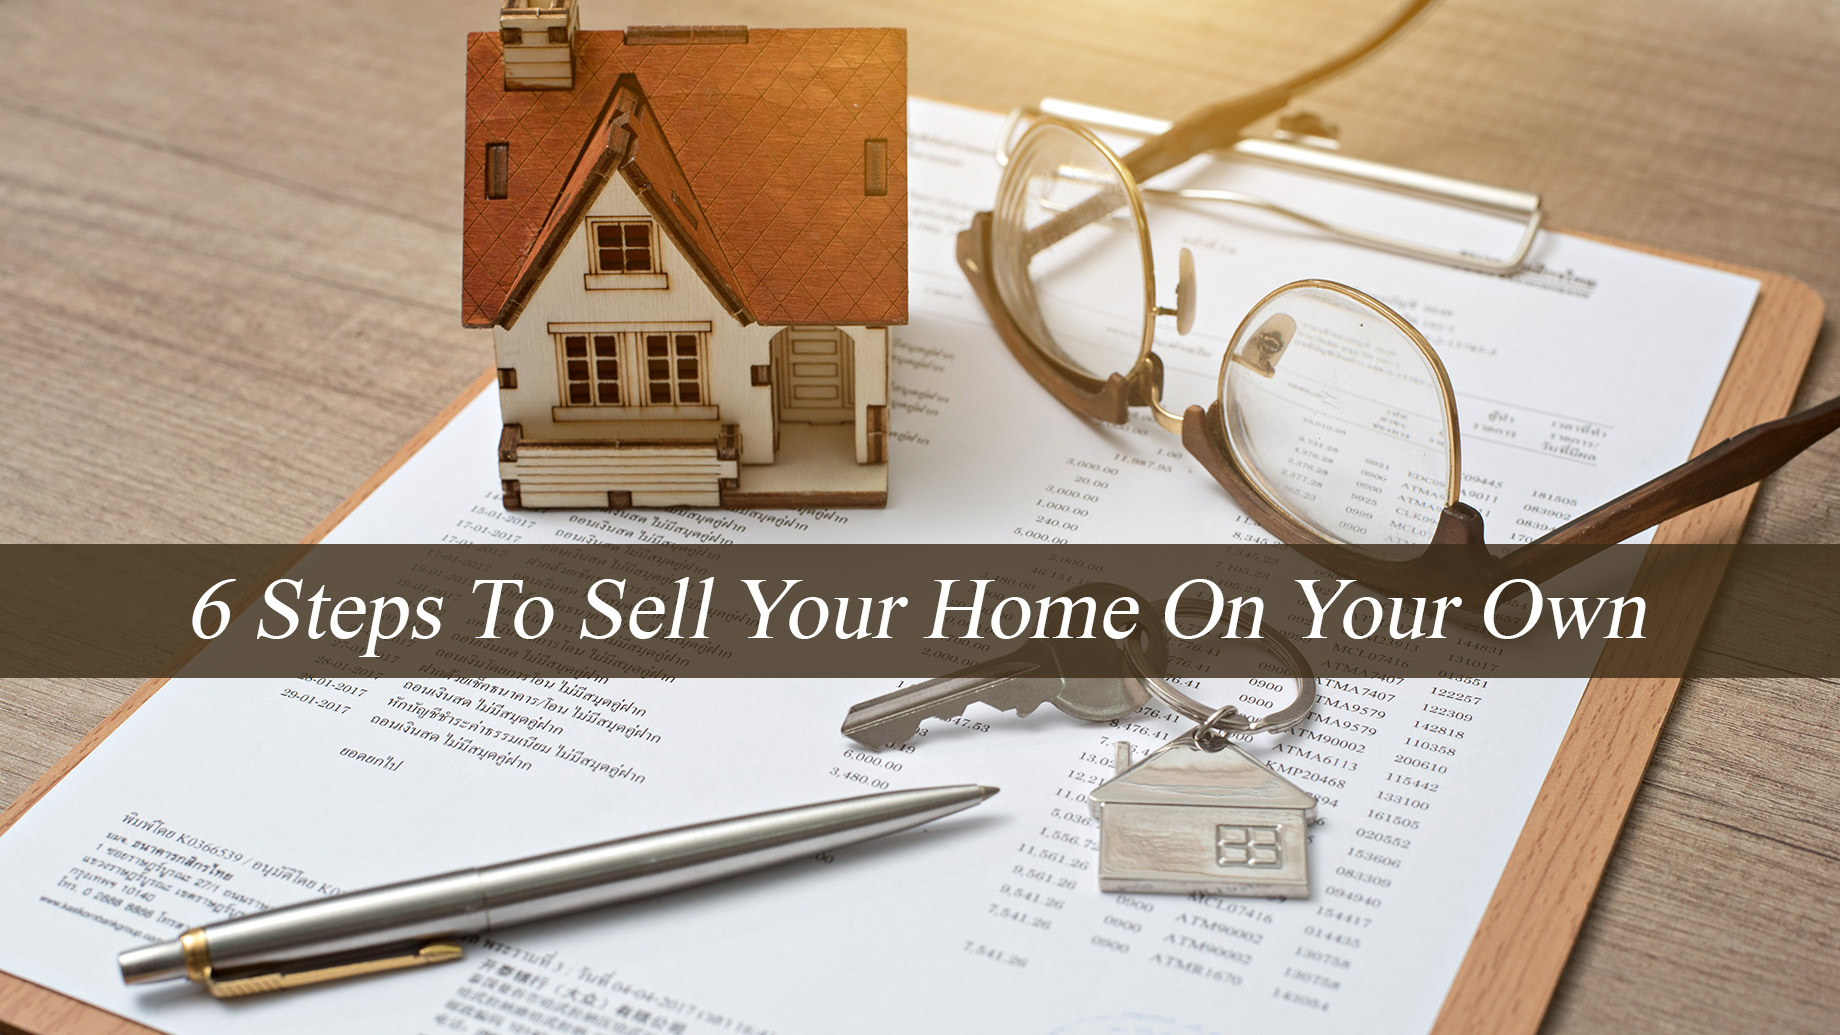 6 Steps To Sell Your Home On Your Own